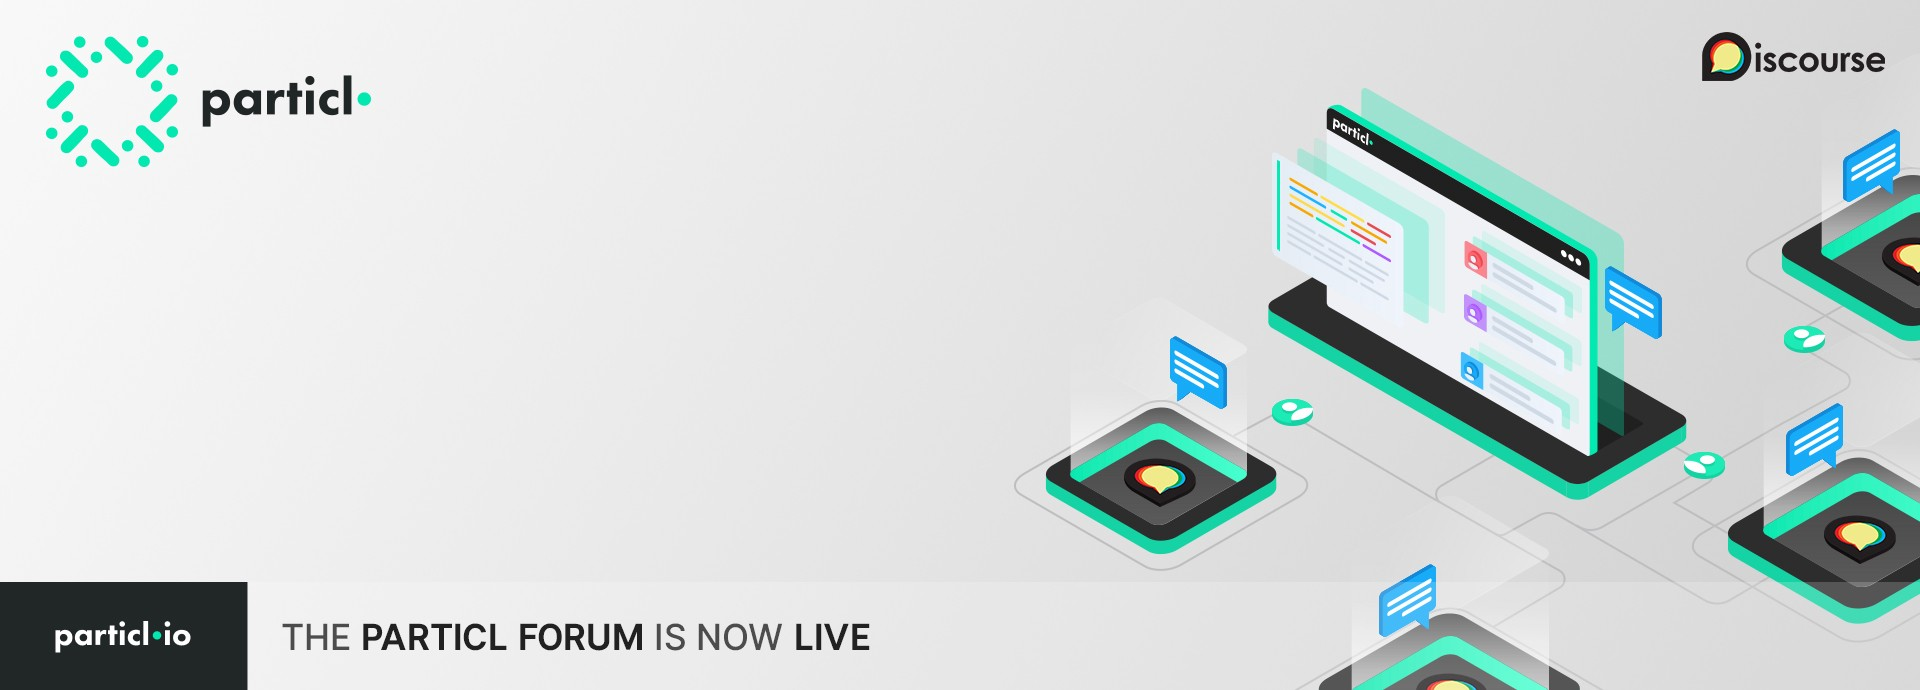 The Particl Forum is Now Live! - Particl News